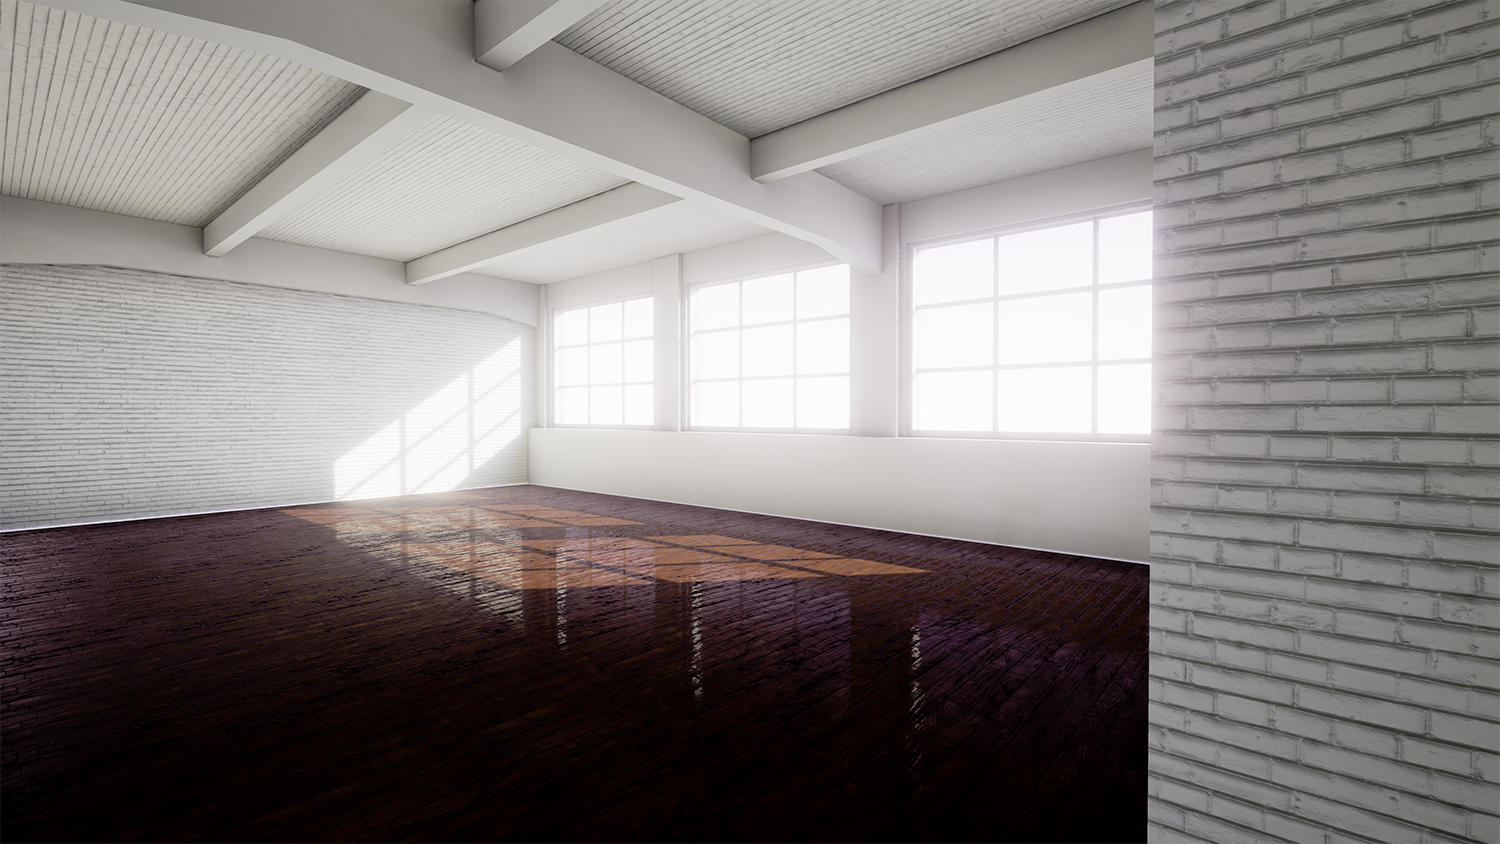 03_FIRSTPASS_UE4-1